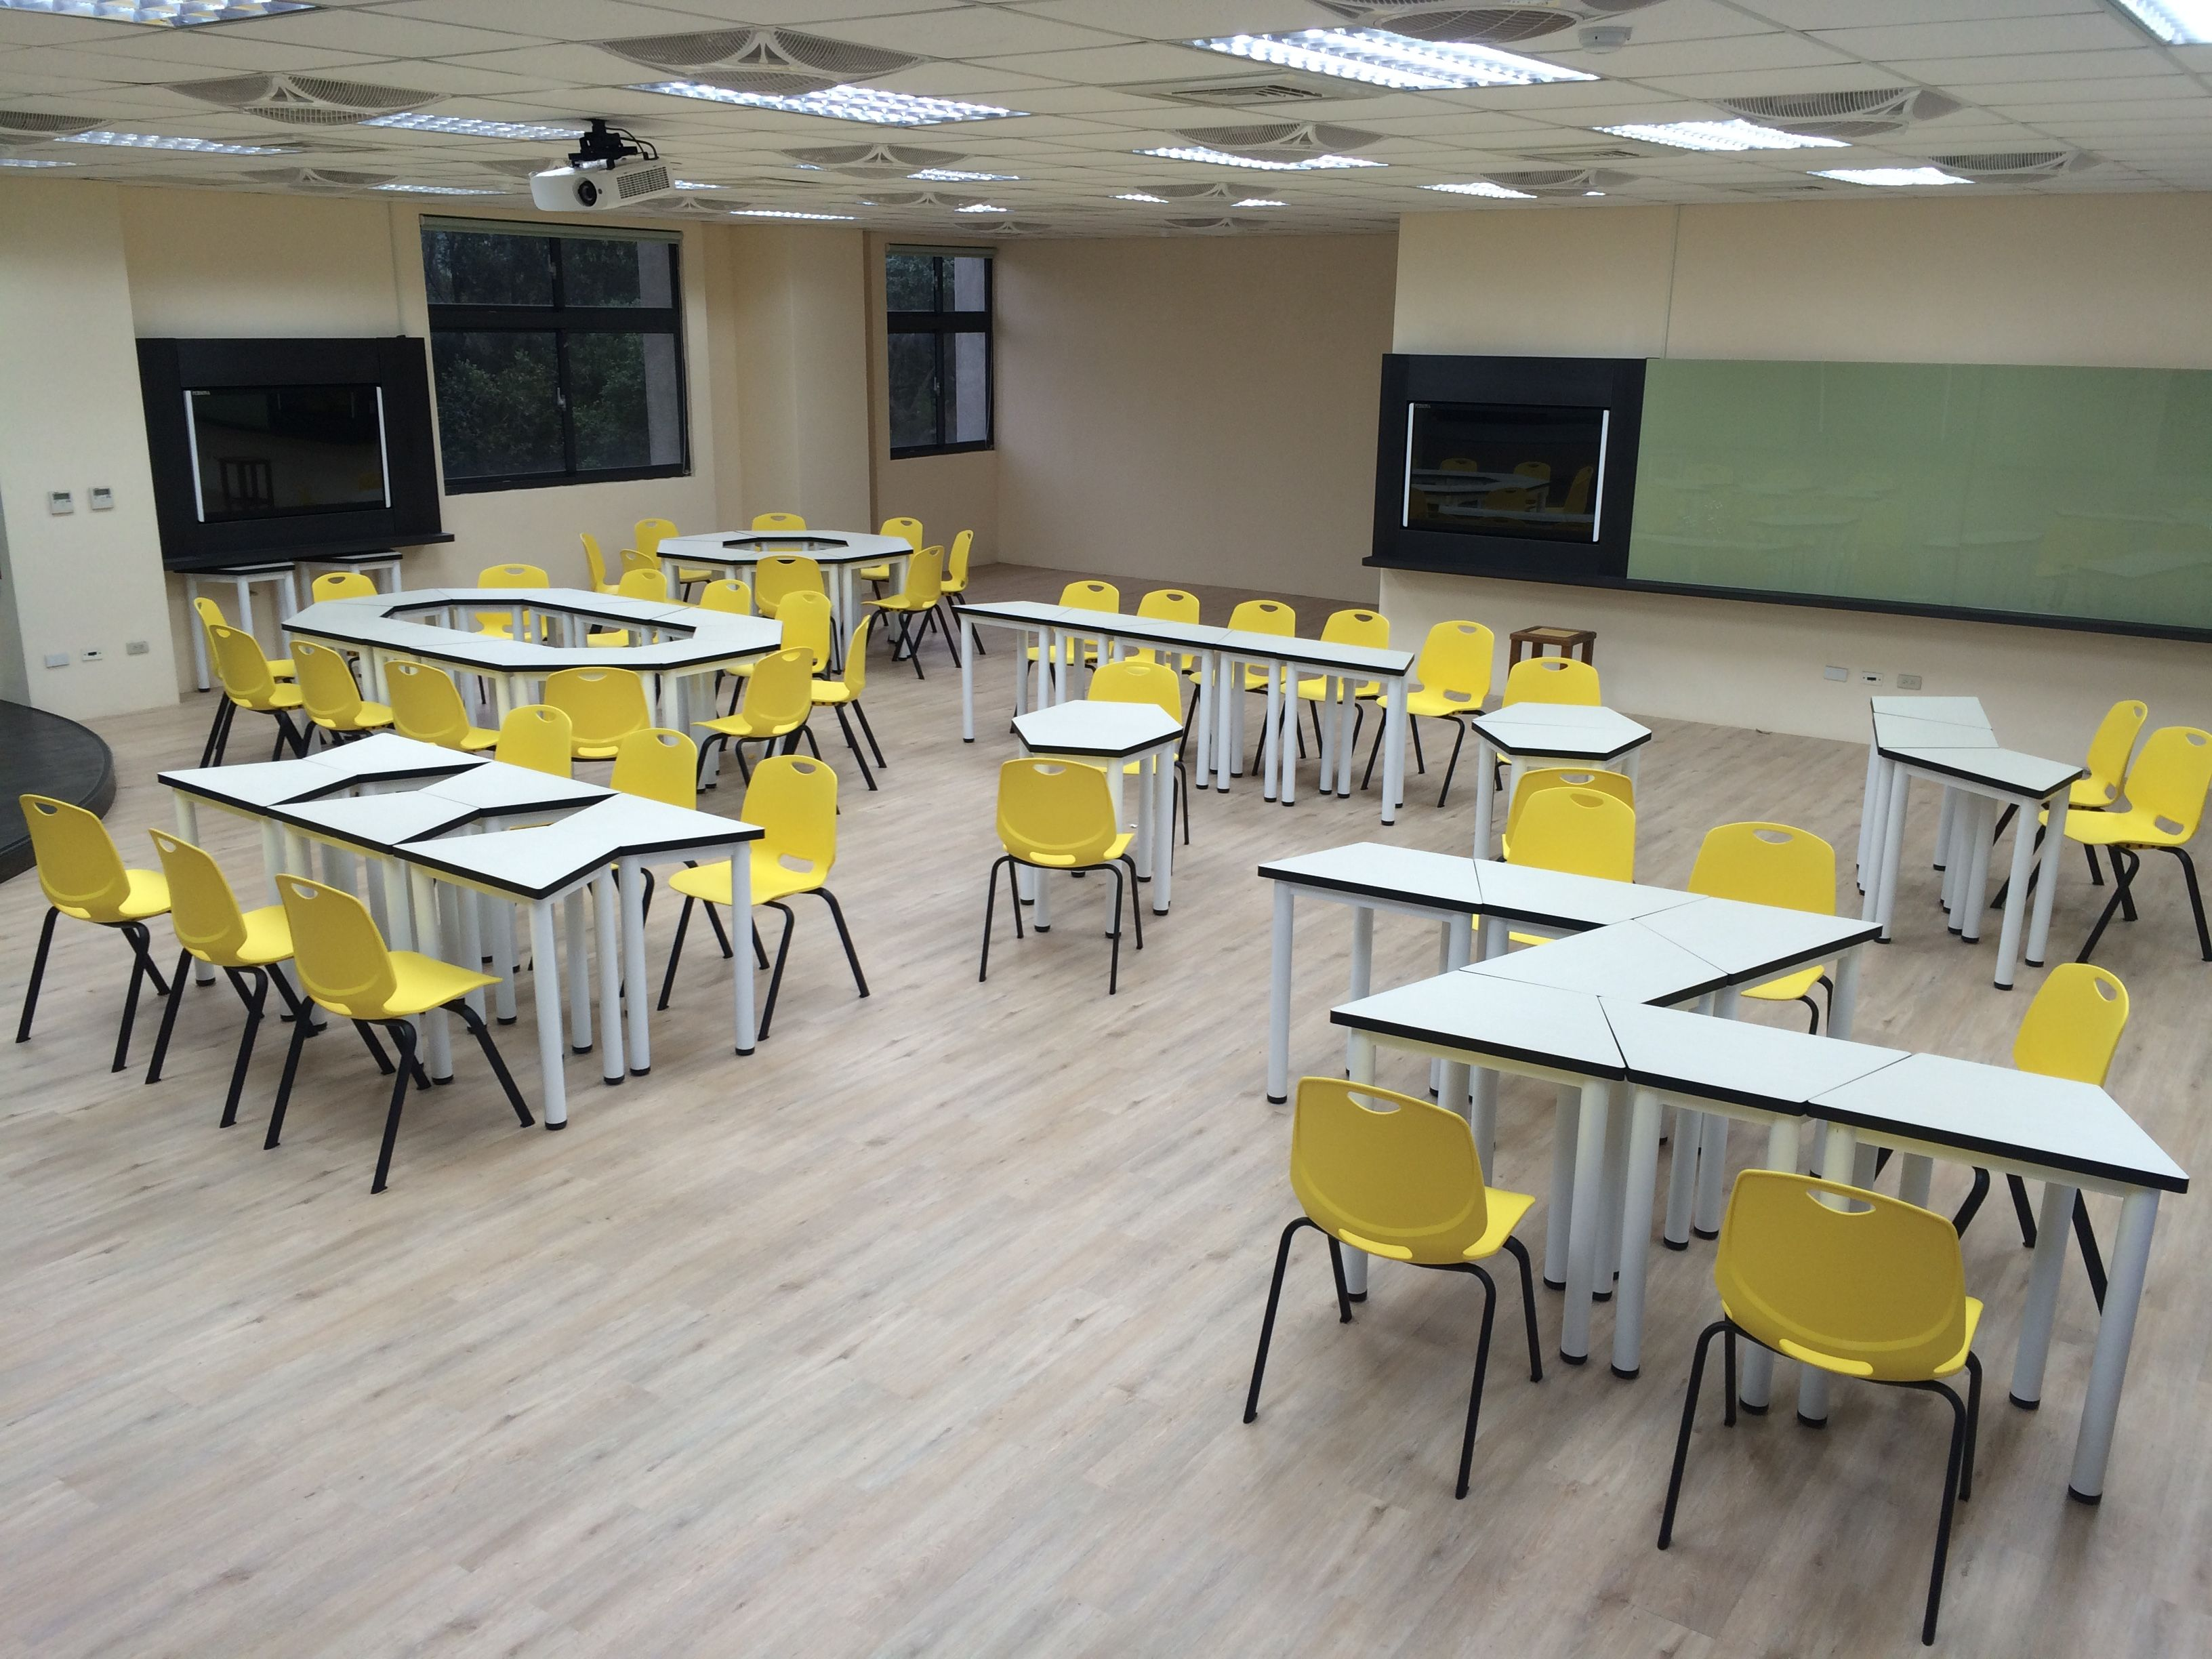 Modular Classroom Desks ~ Pin by 鎮穎 徐 on trapezoid student tables modular seminar